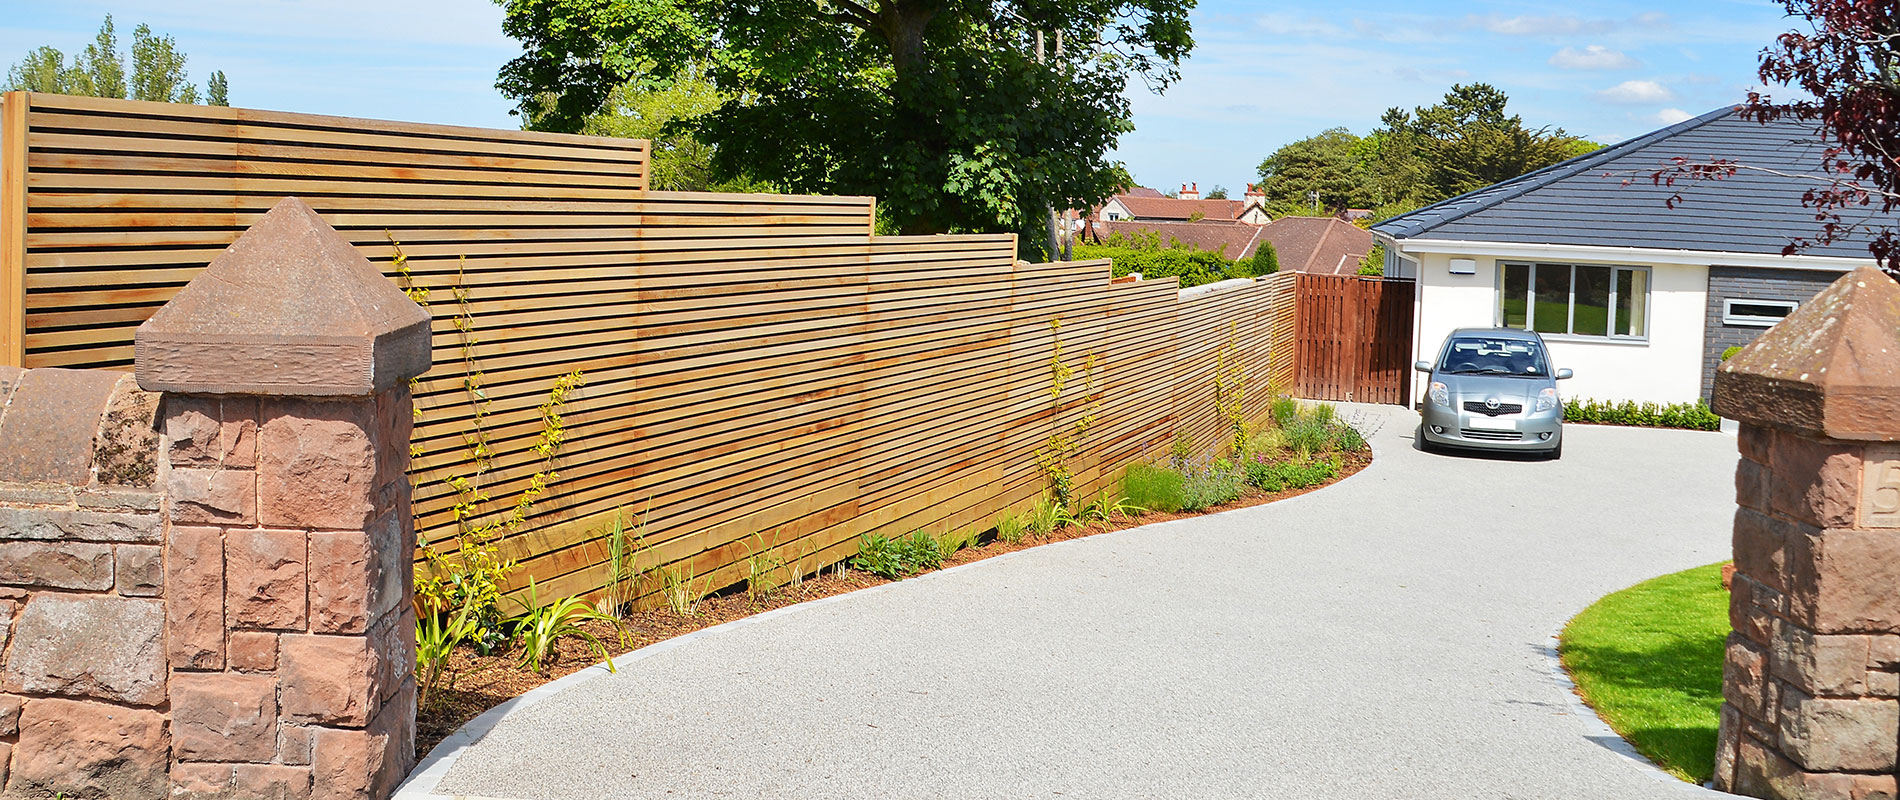 Contemporary Driveway on a Slope Fenced in Using Western Red Cedar Slatted Screens